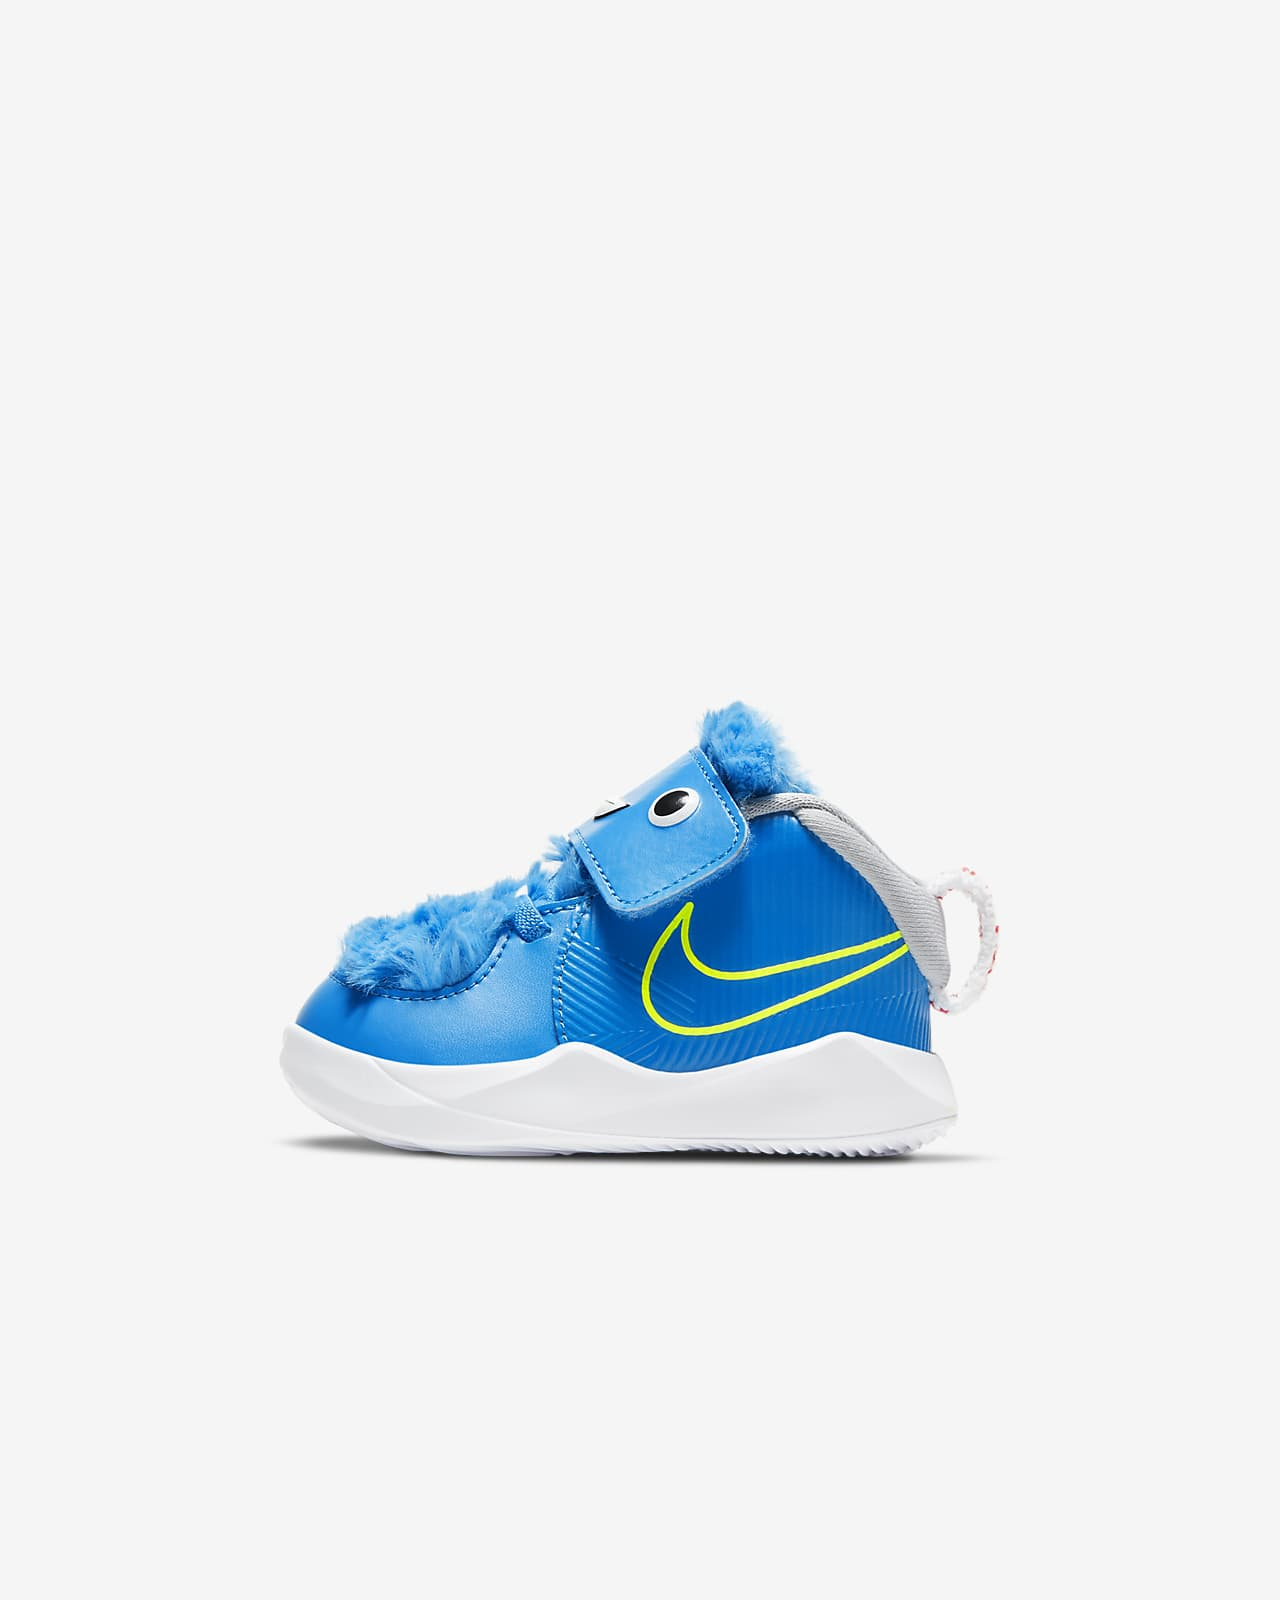 Nike Team Hustle D 9 Lil Baby and Toddler Shoe